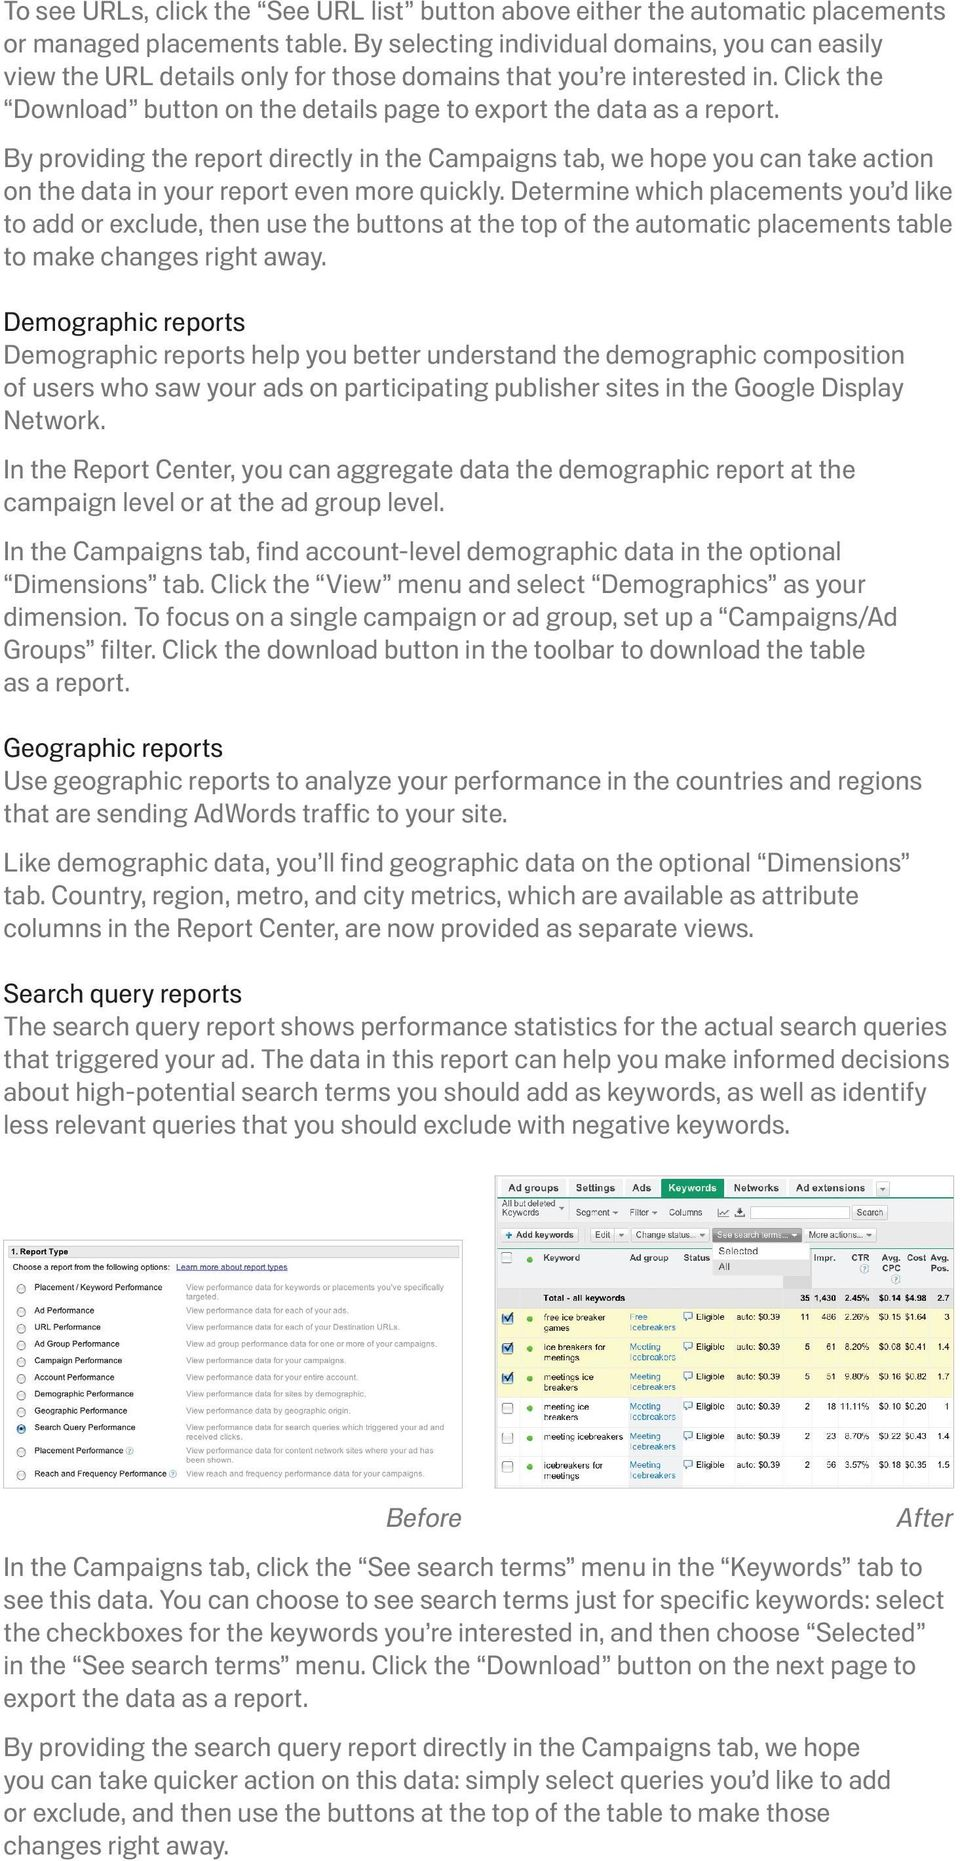 By providing the report directly in the Campaigns tab, we hope you can take action on the data in your report even more quickly.